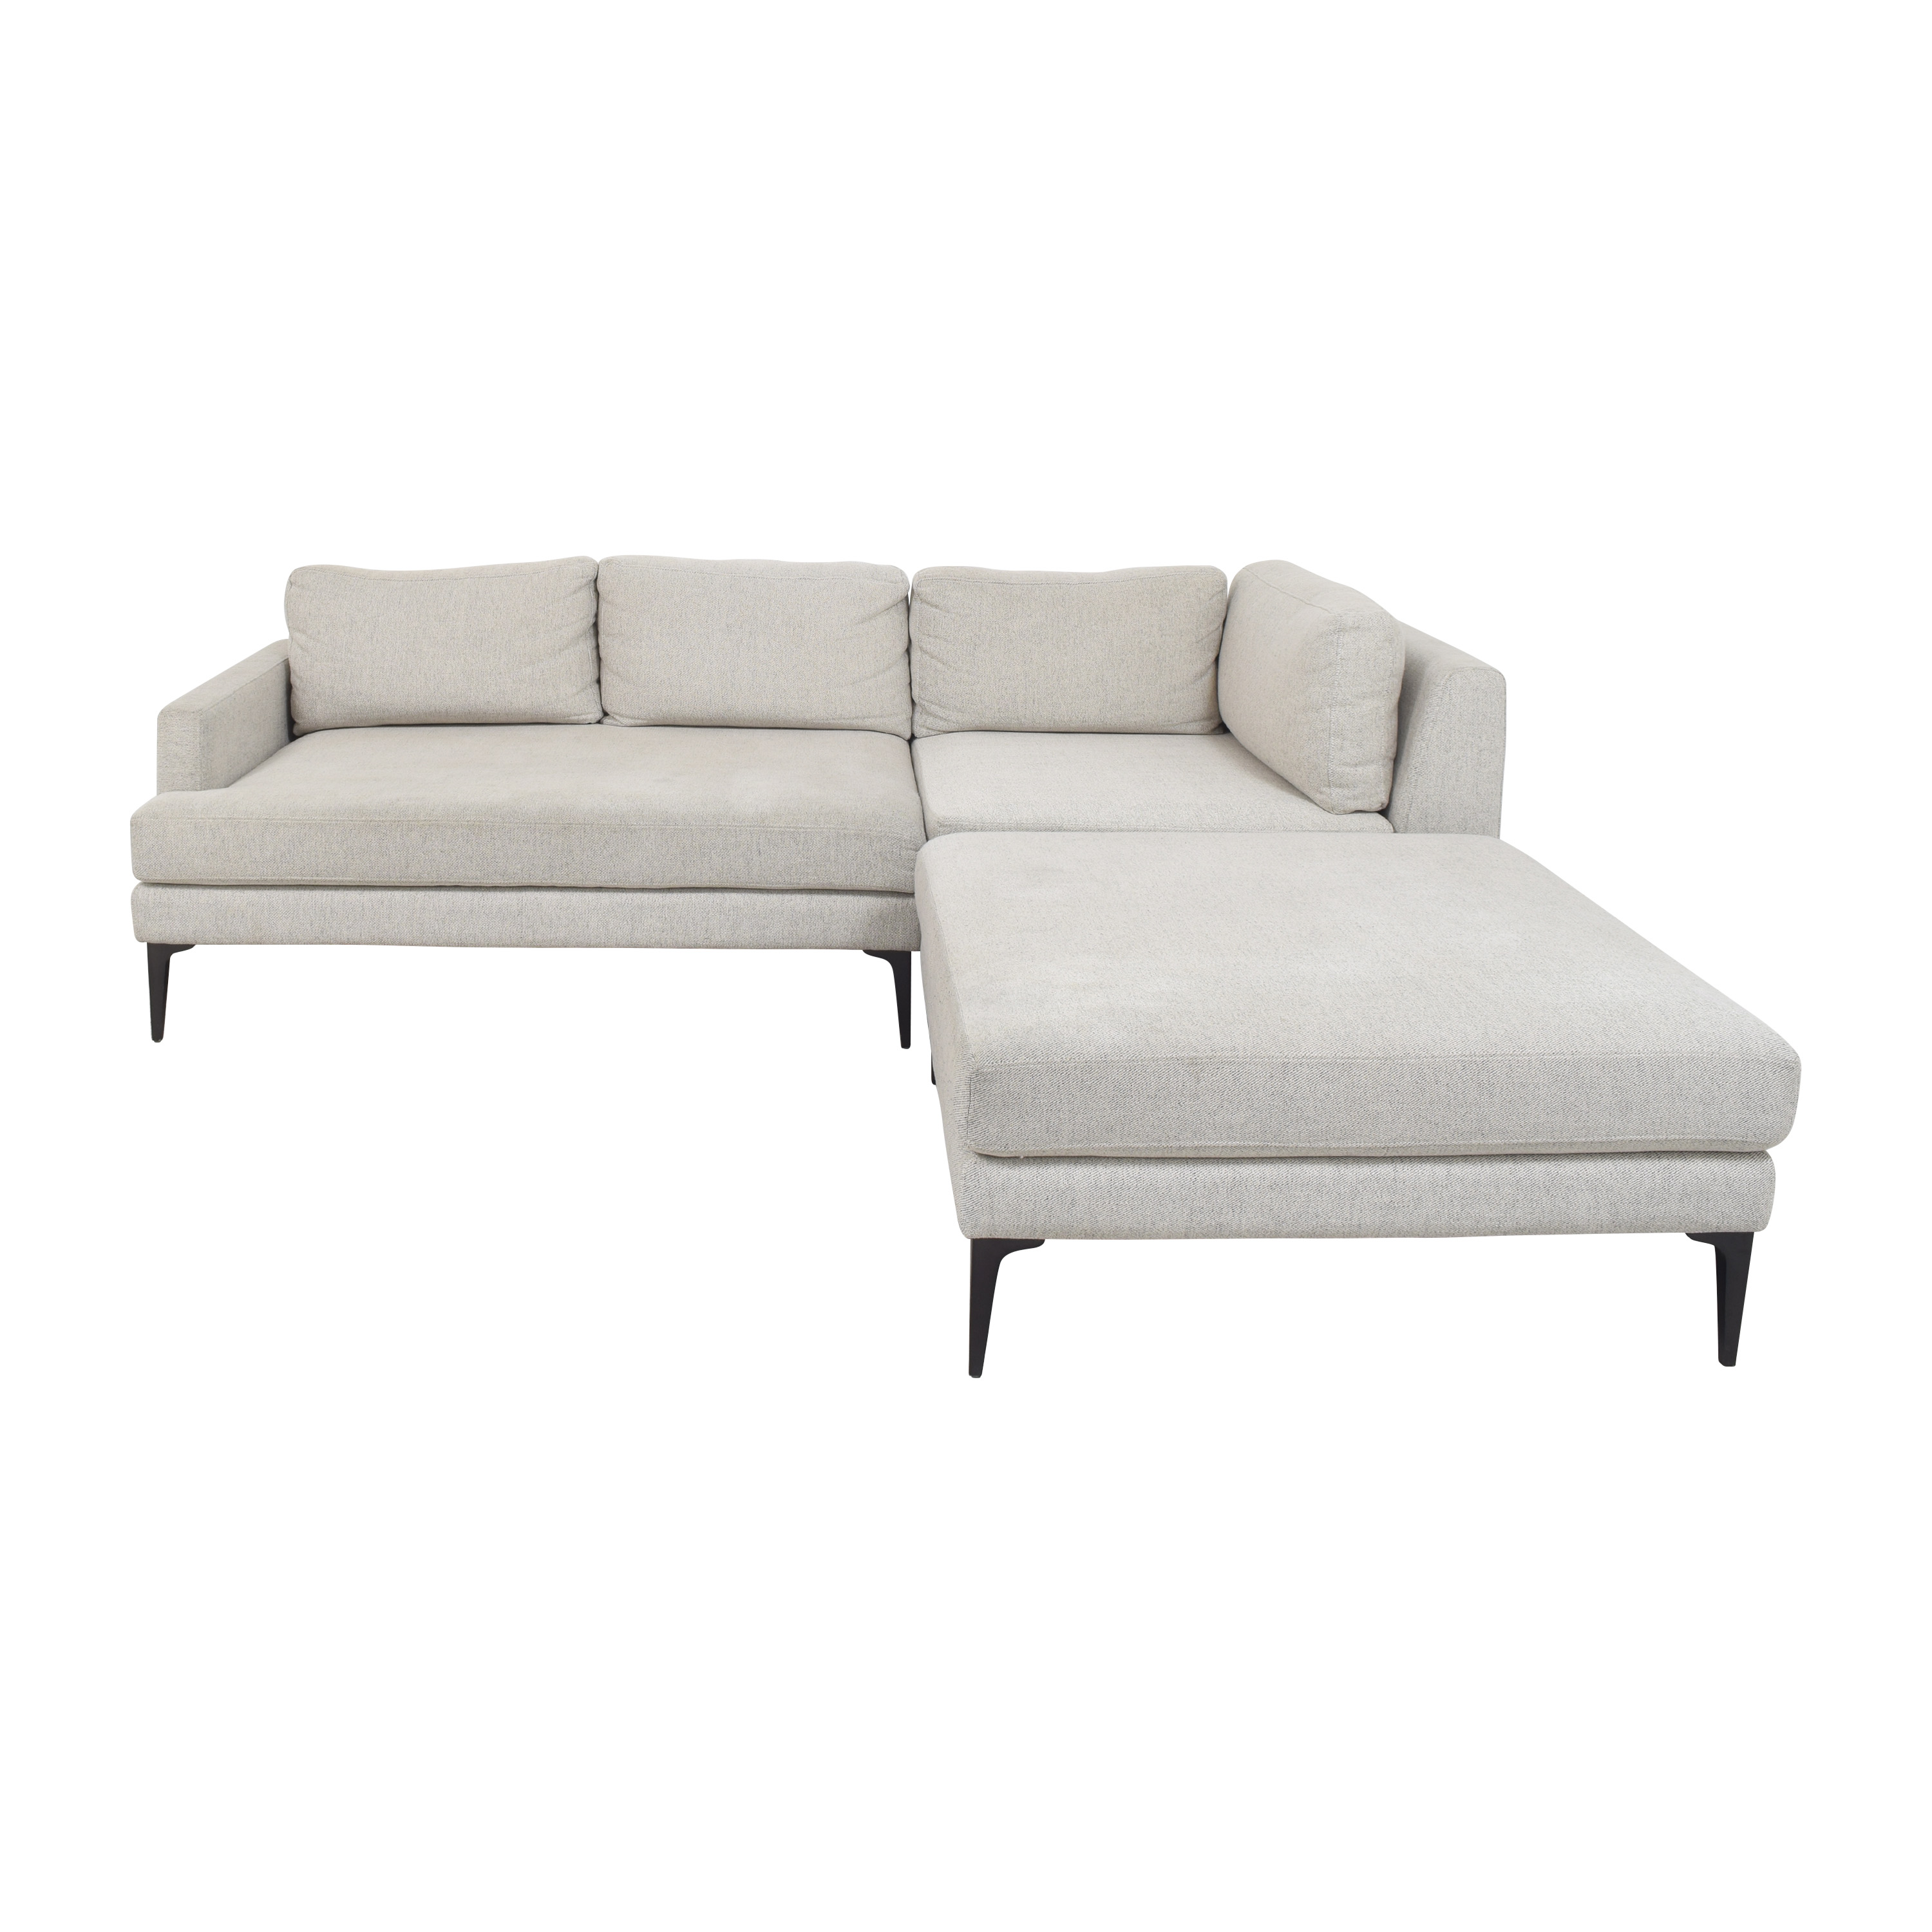 shop West Elm West Elm Andes Three Piece Chaise Sectional Sofa online